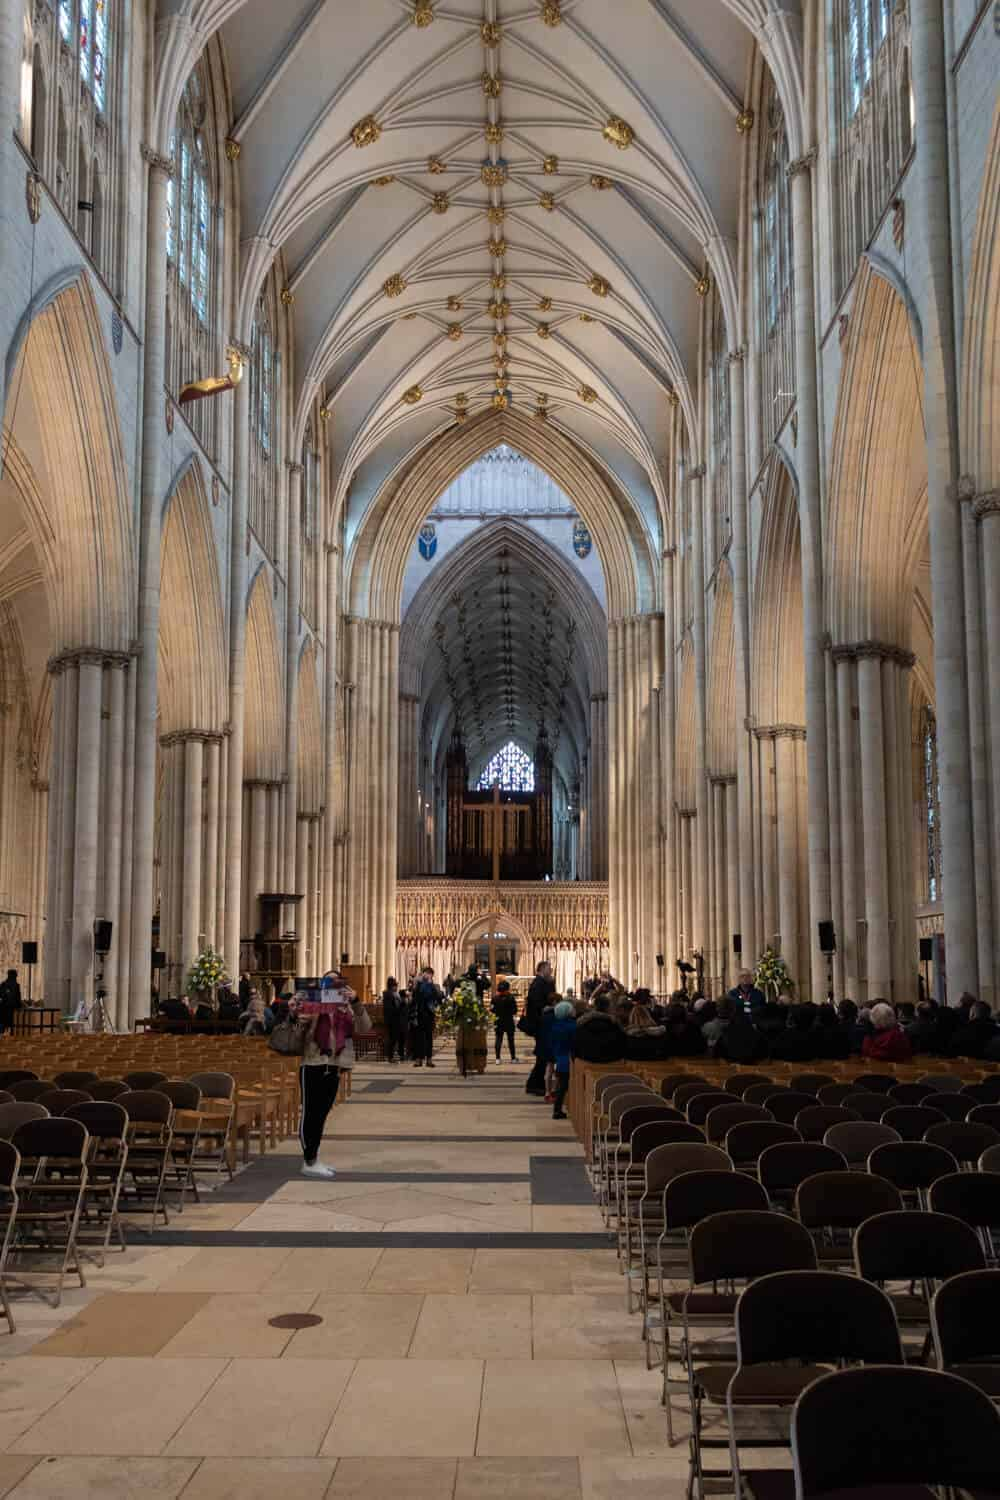 Visiting York Minster Cathedral